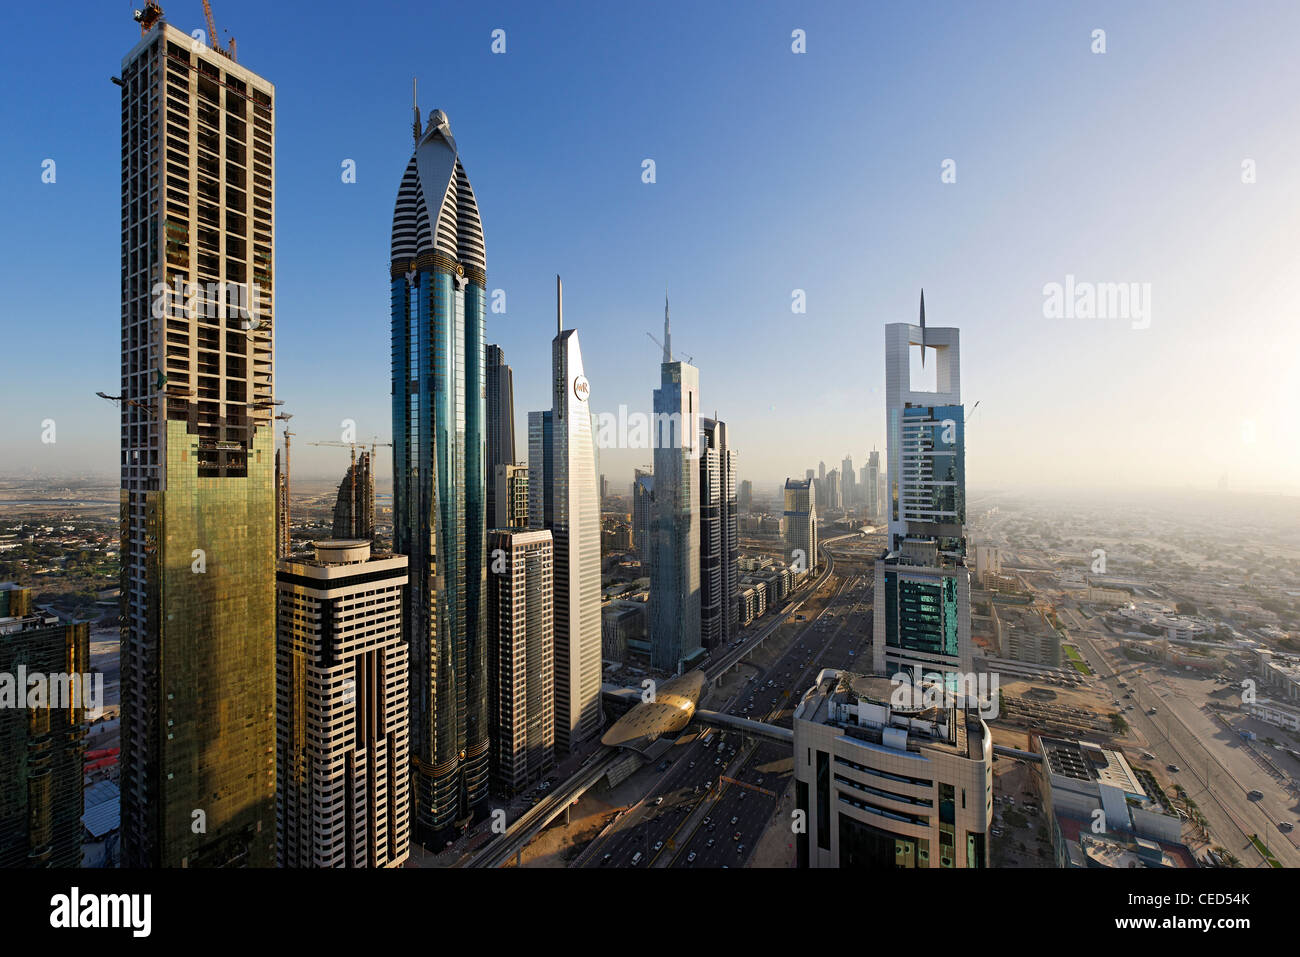 Modern Architecture Skyscrapers rose rayhaanrotana, the tallest hotel in the world, towers